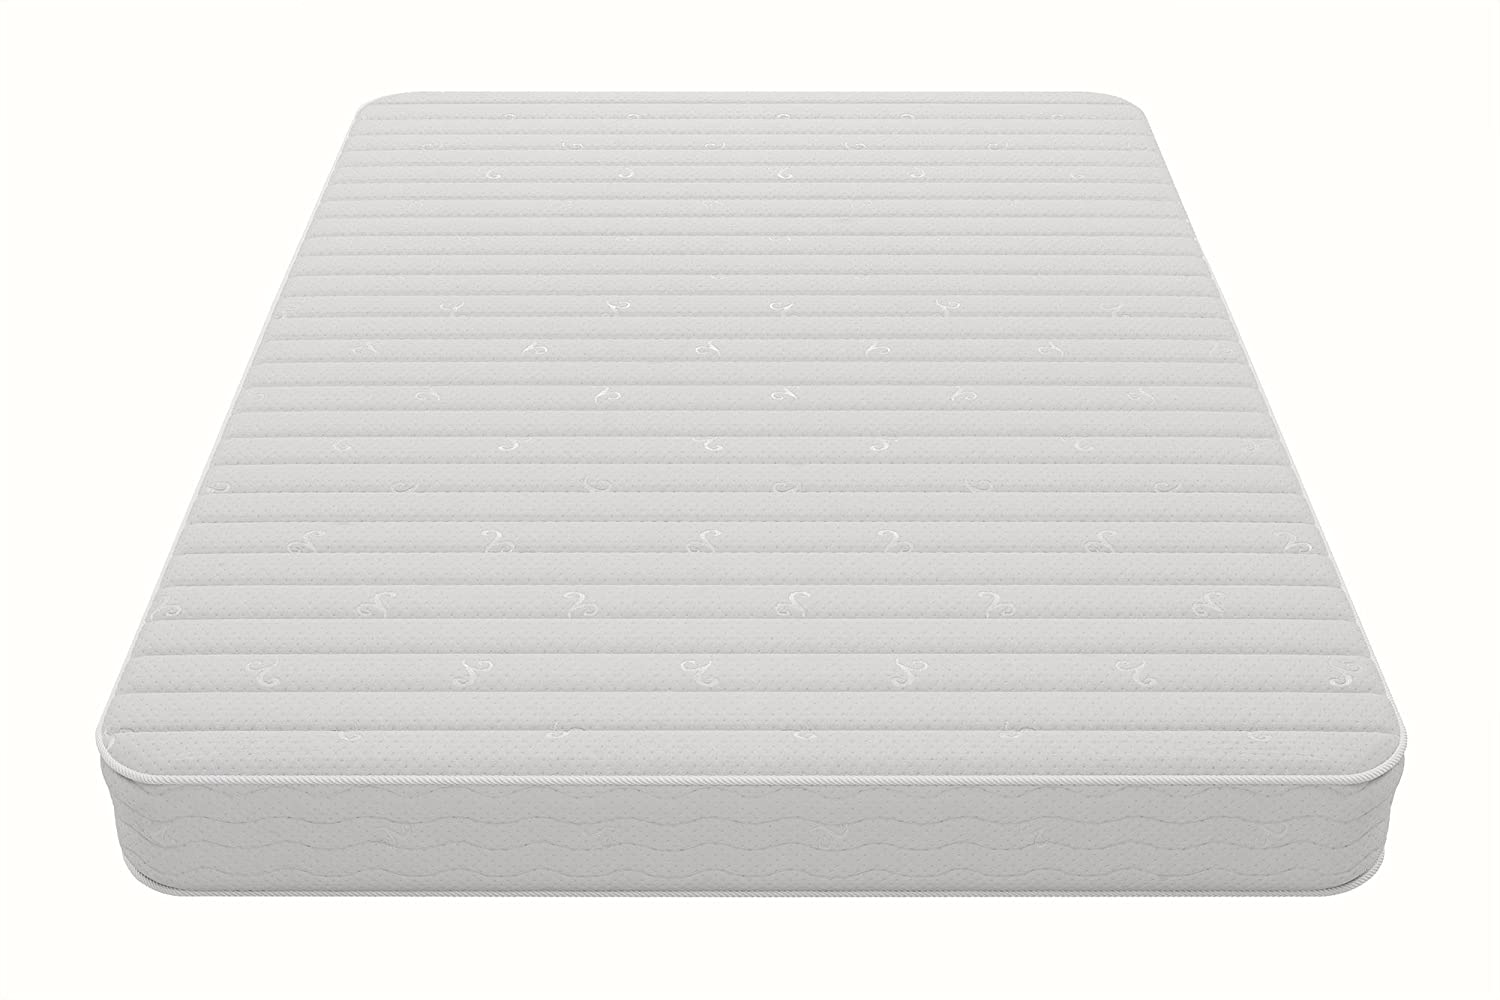 what is the best mattresses for a platform bed